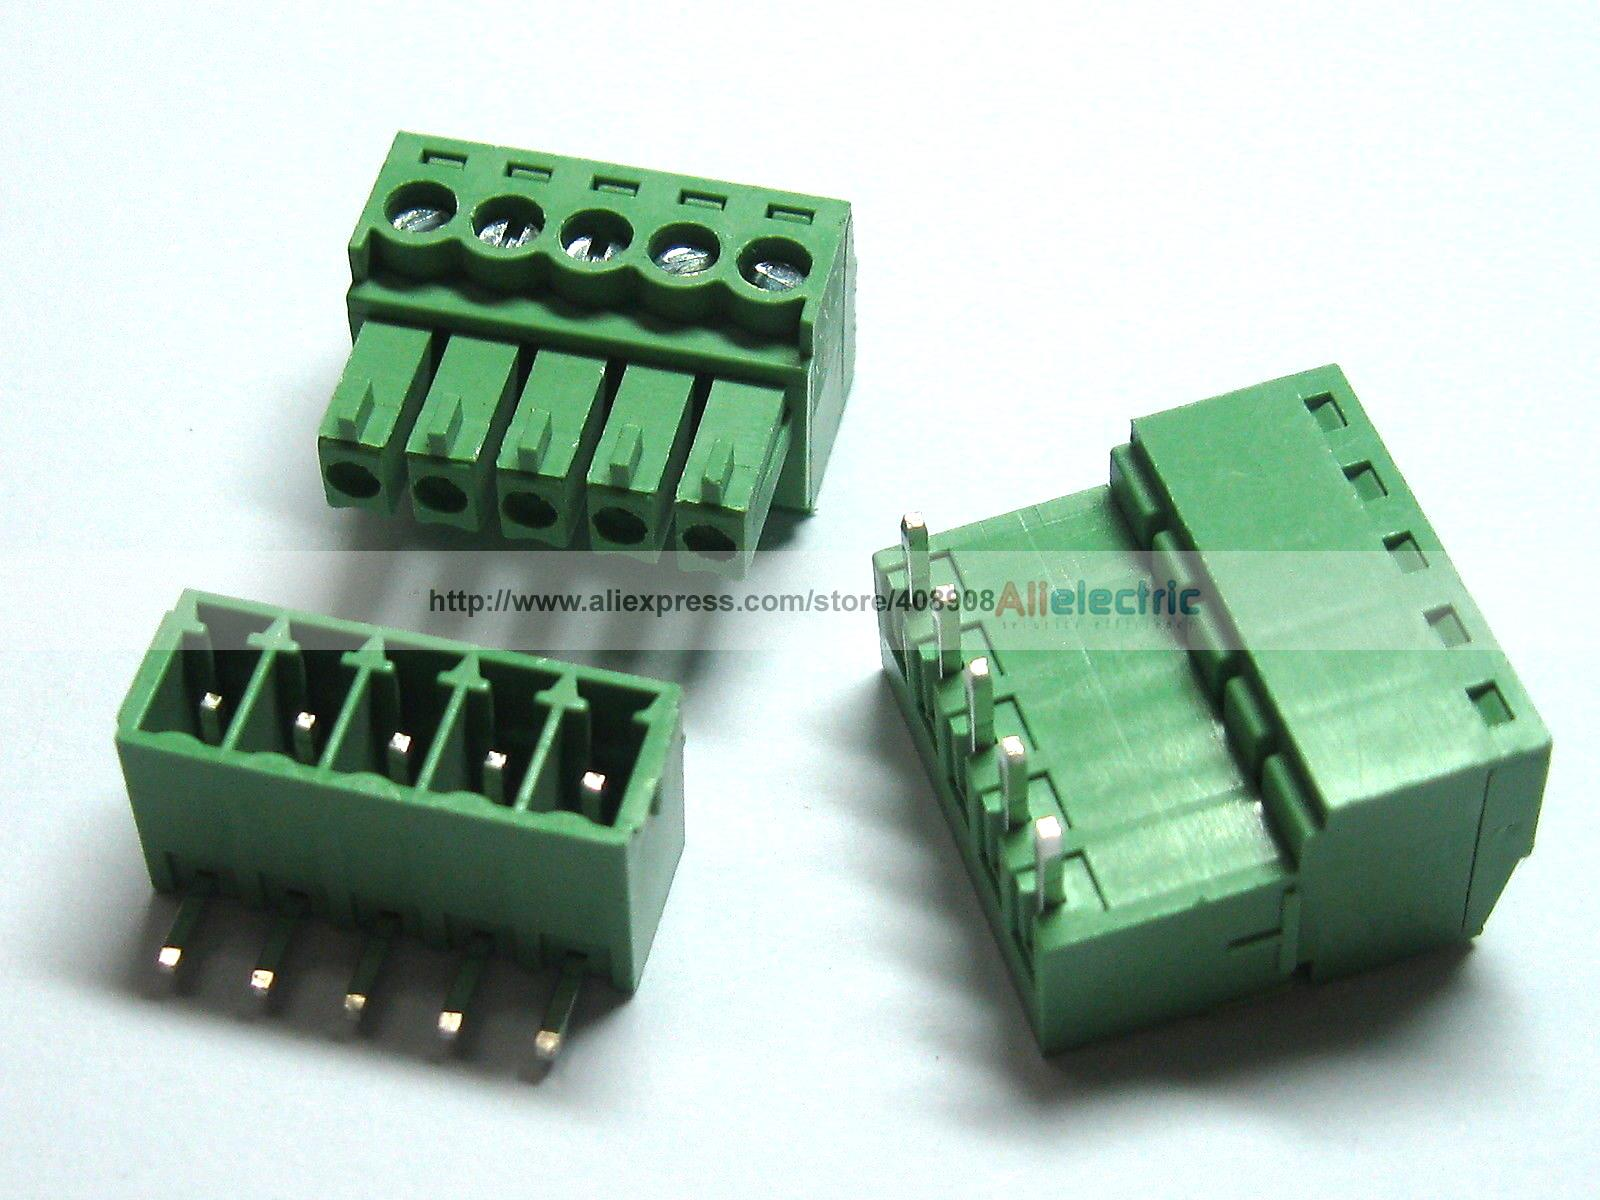 200 Pcs/lot Screw Terminal Block Connector 3.5mm Angle 5 Pin Green Pluggable Type 30 pcs screw terminal block connector 3 81mm 12 pin green pluggable type